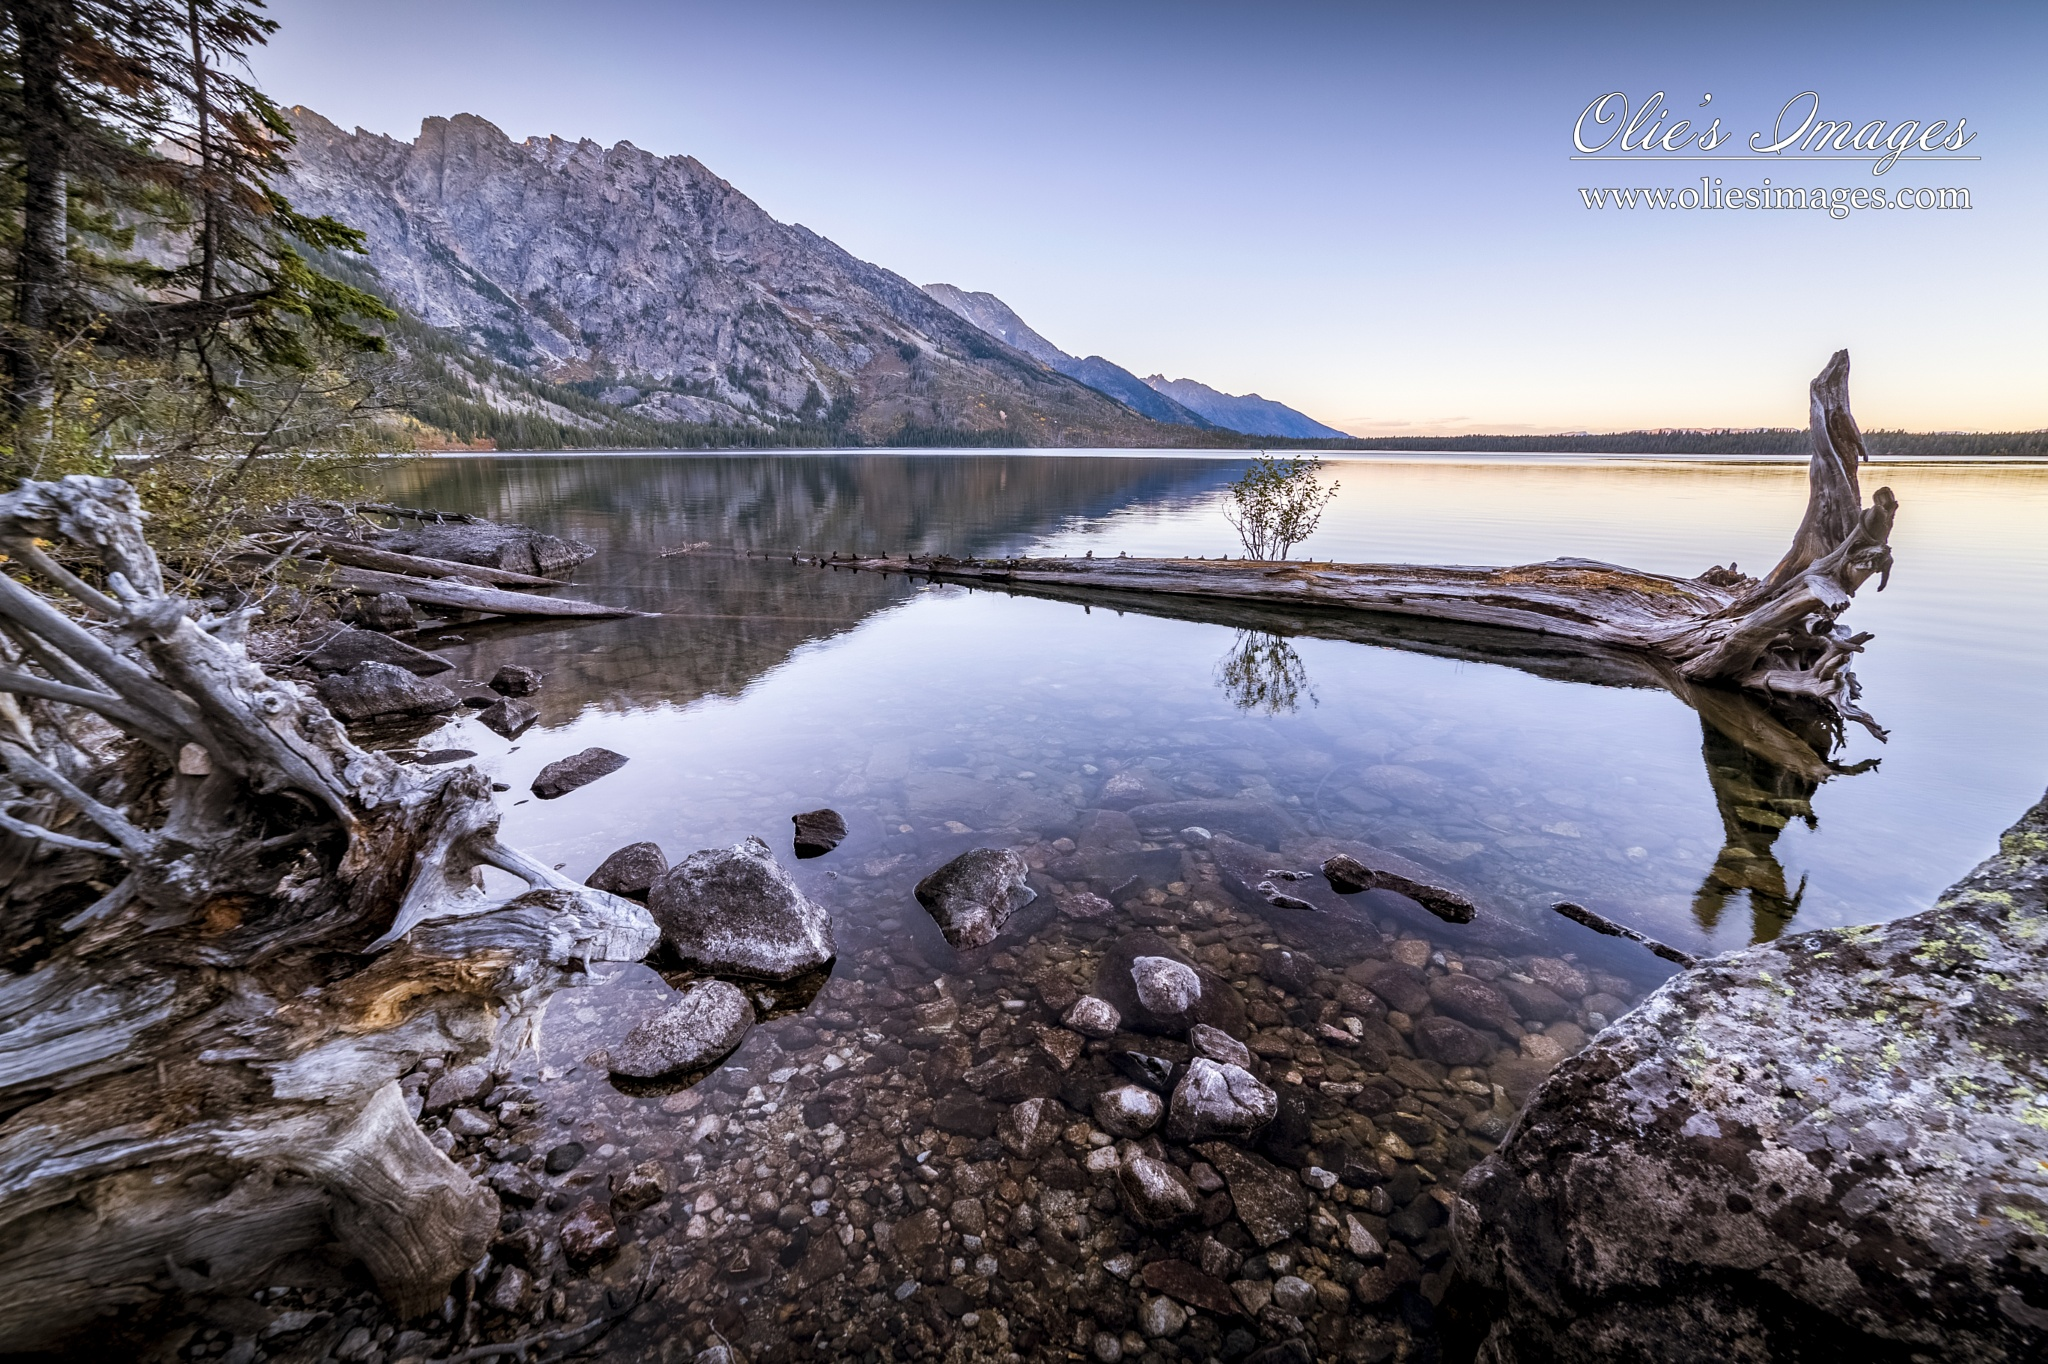 Reflections by Olie's Images